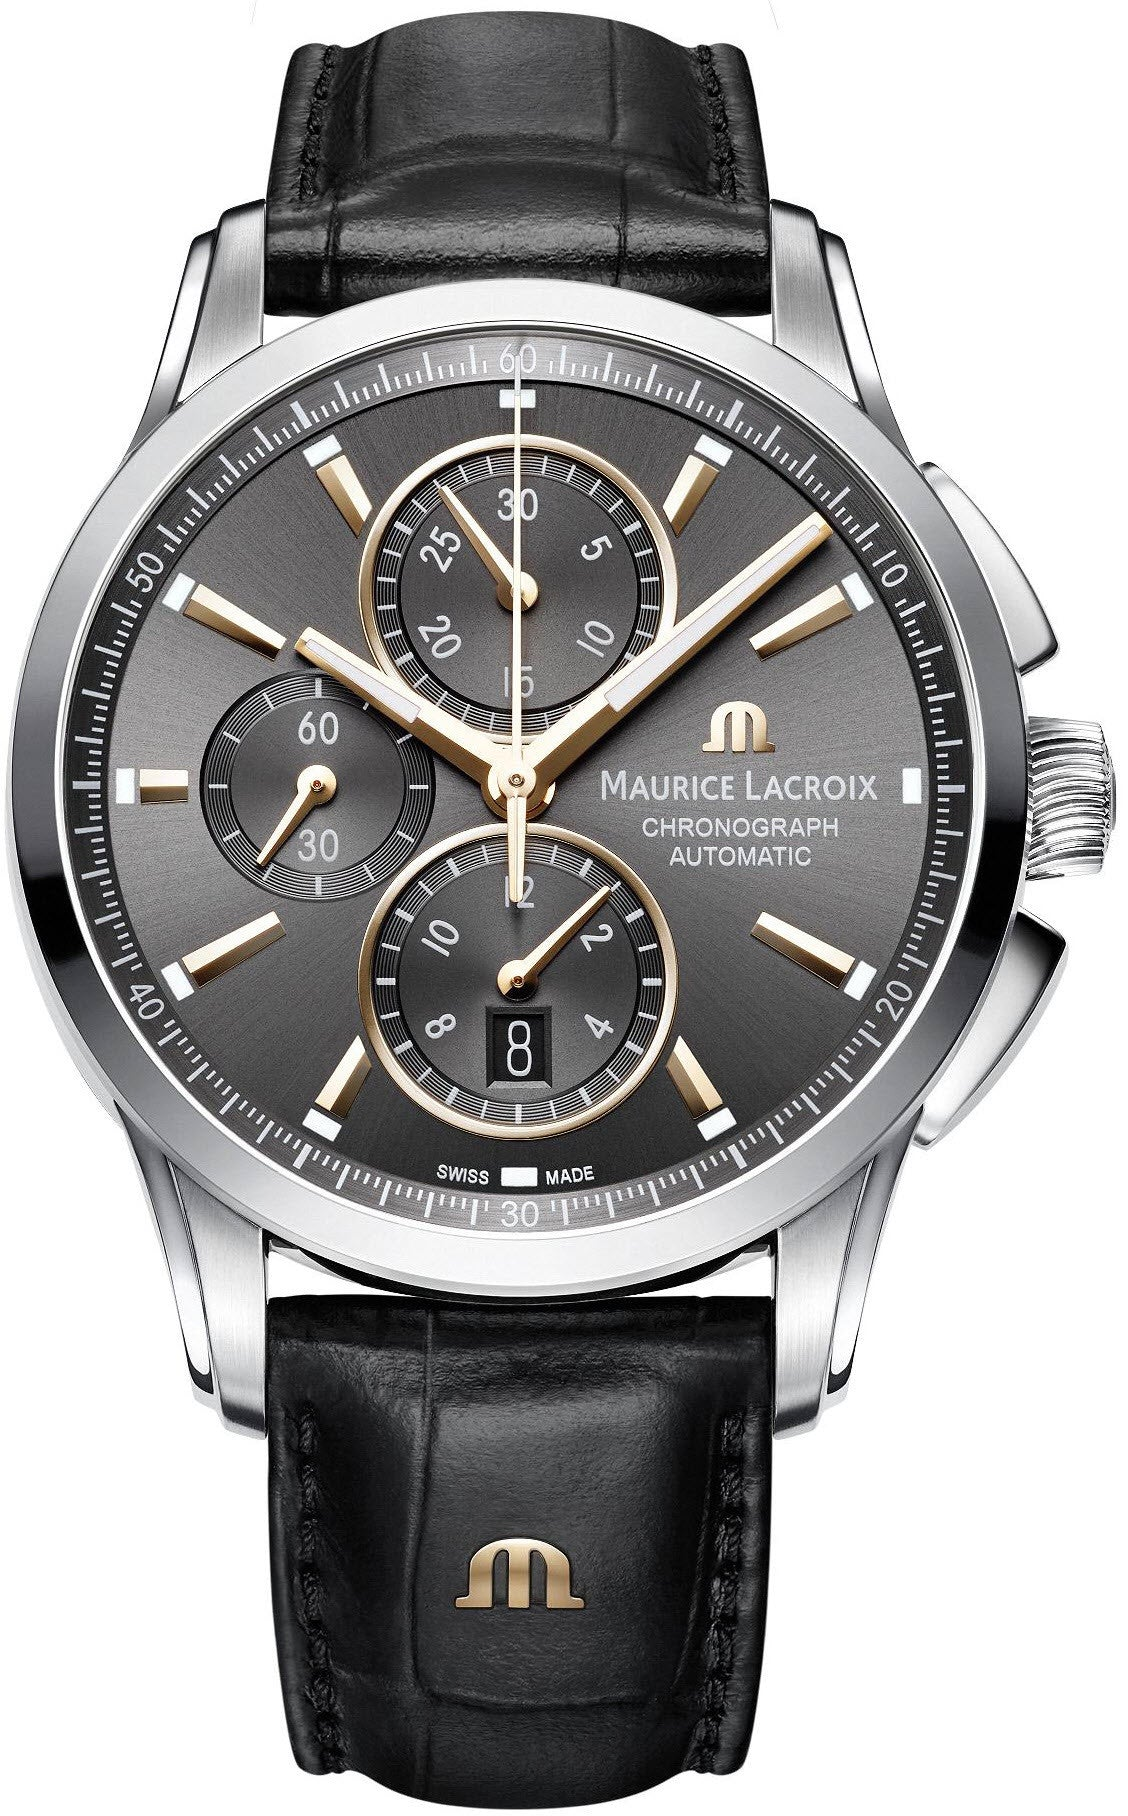 Maurice lacroix watch pontos chronograph mens pt6388 ss001 331 1 watch for Maurice lacroix watches